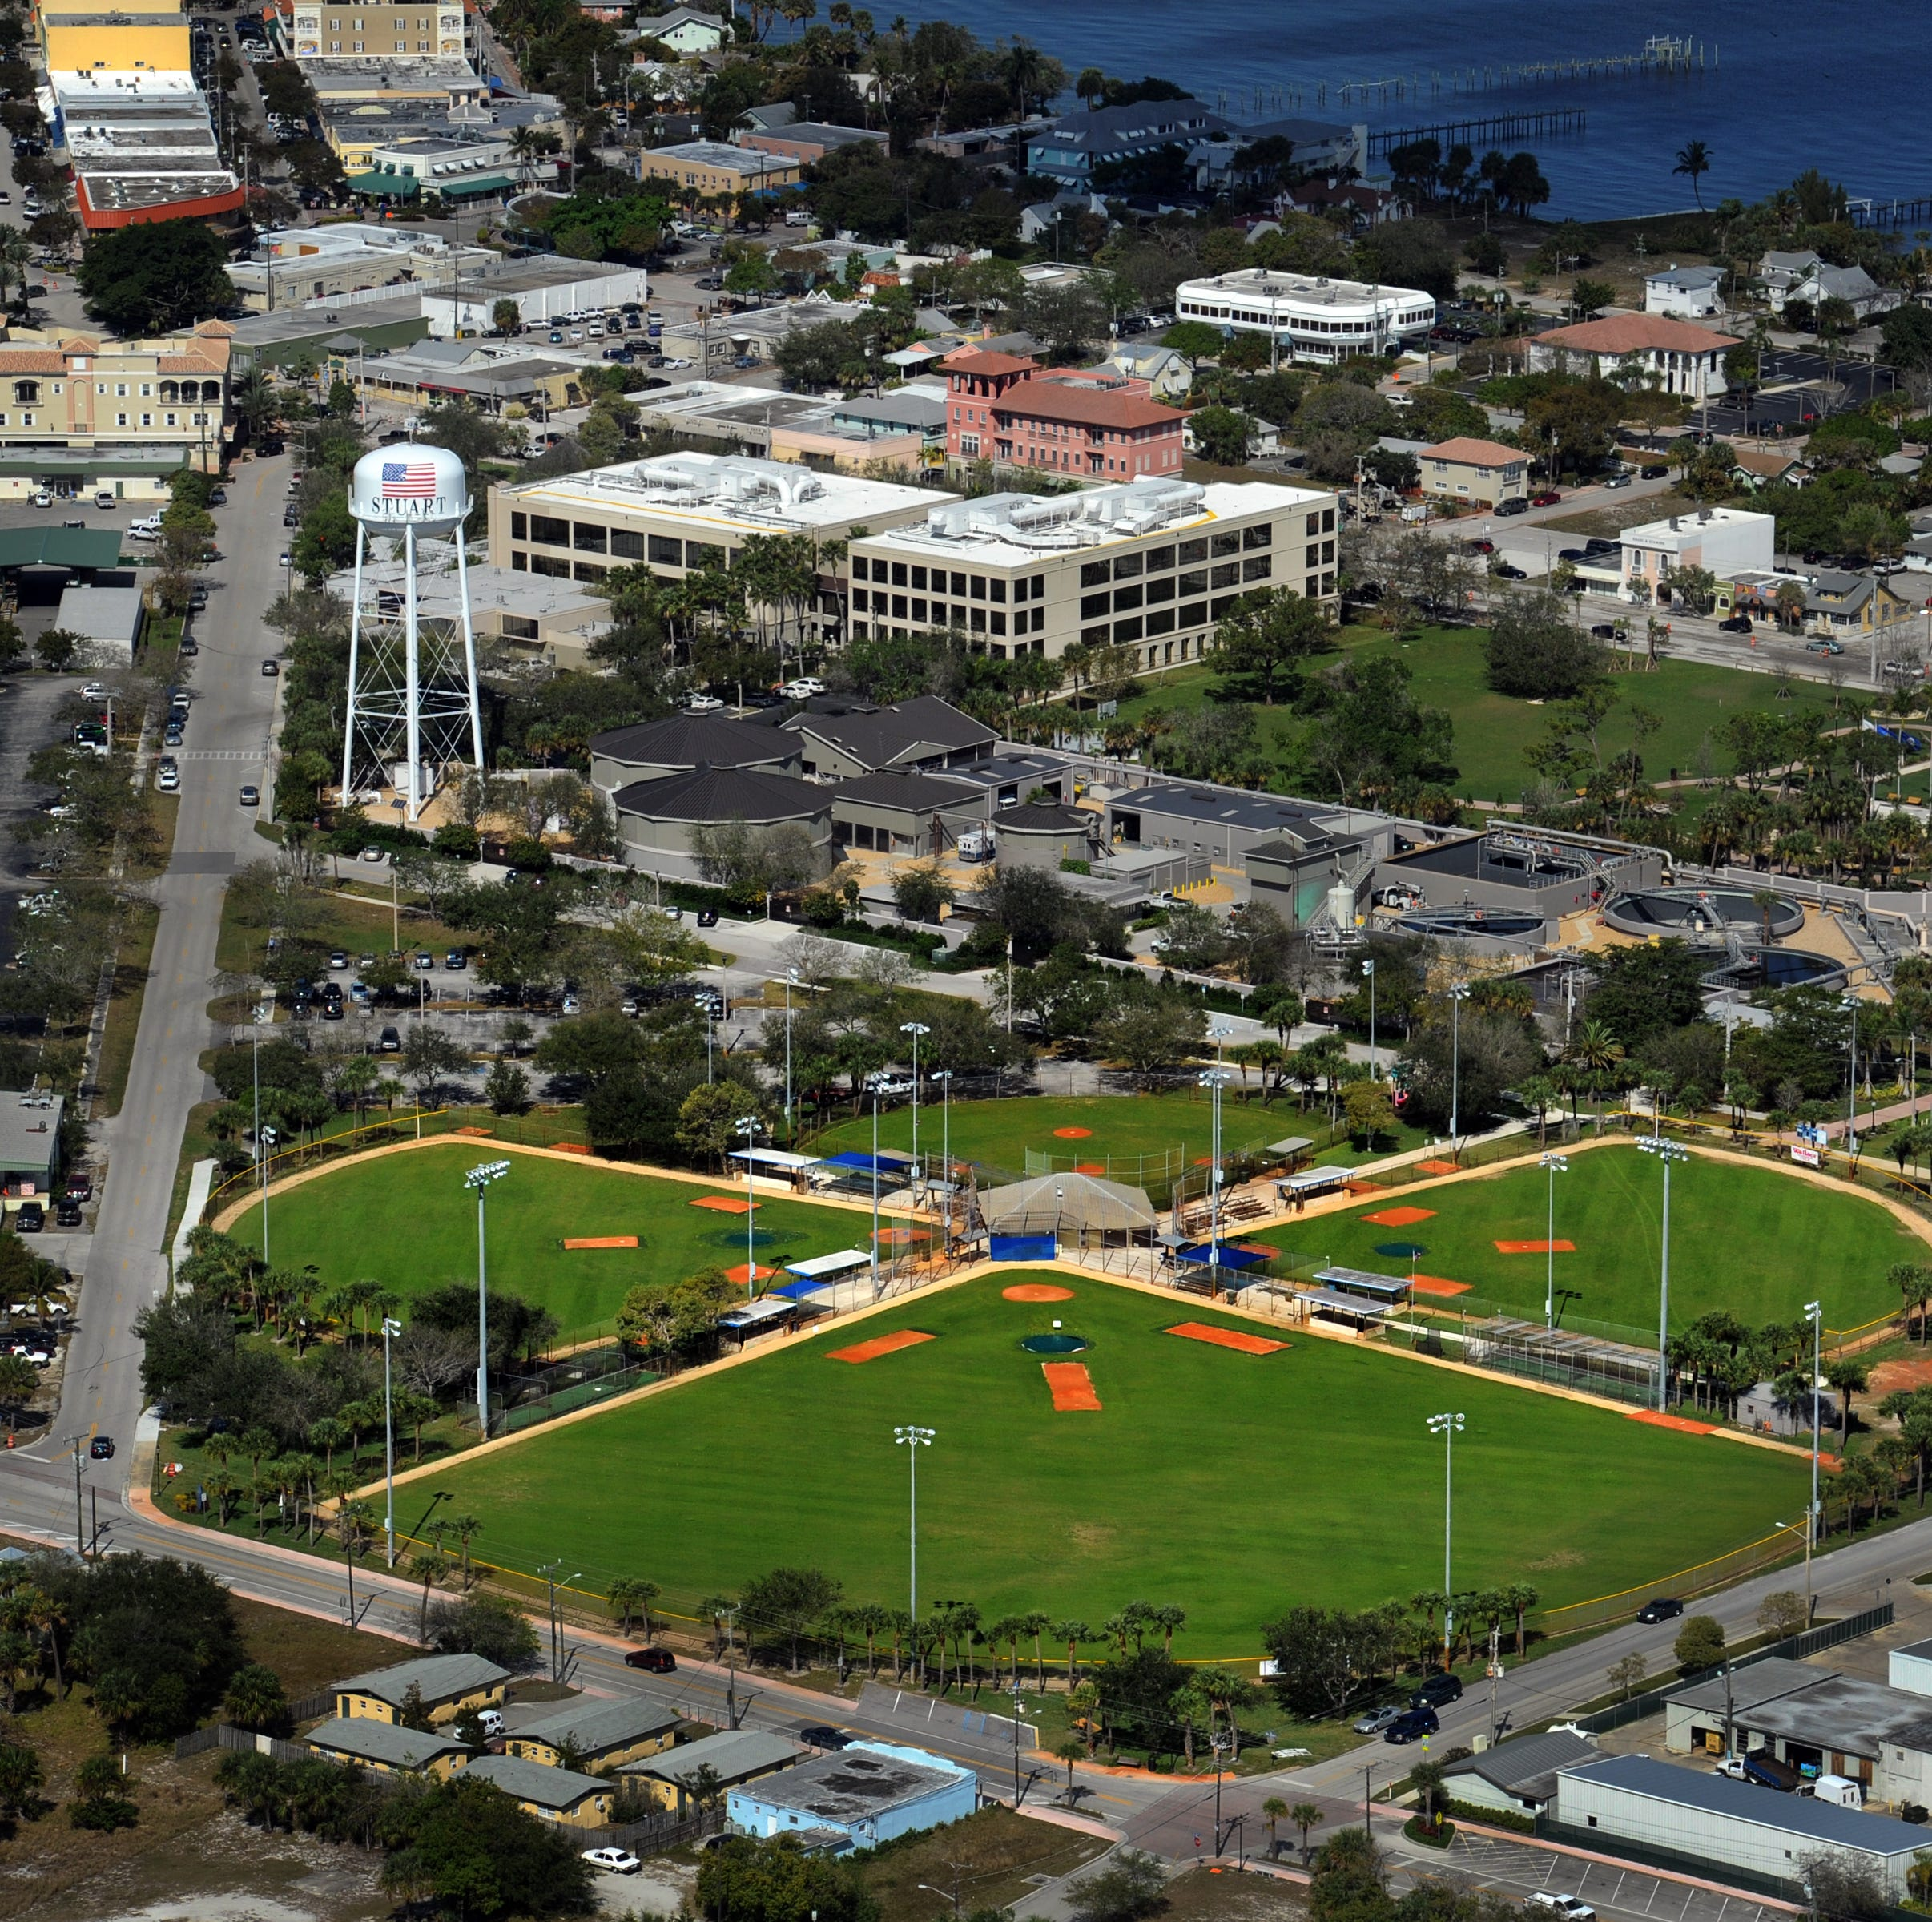 This doesn't have to be the end of baseball in Stuart — if commissioners choose wisely